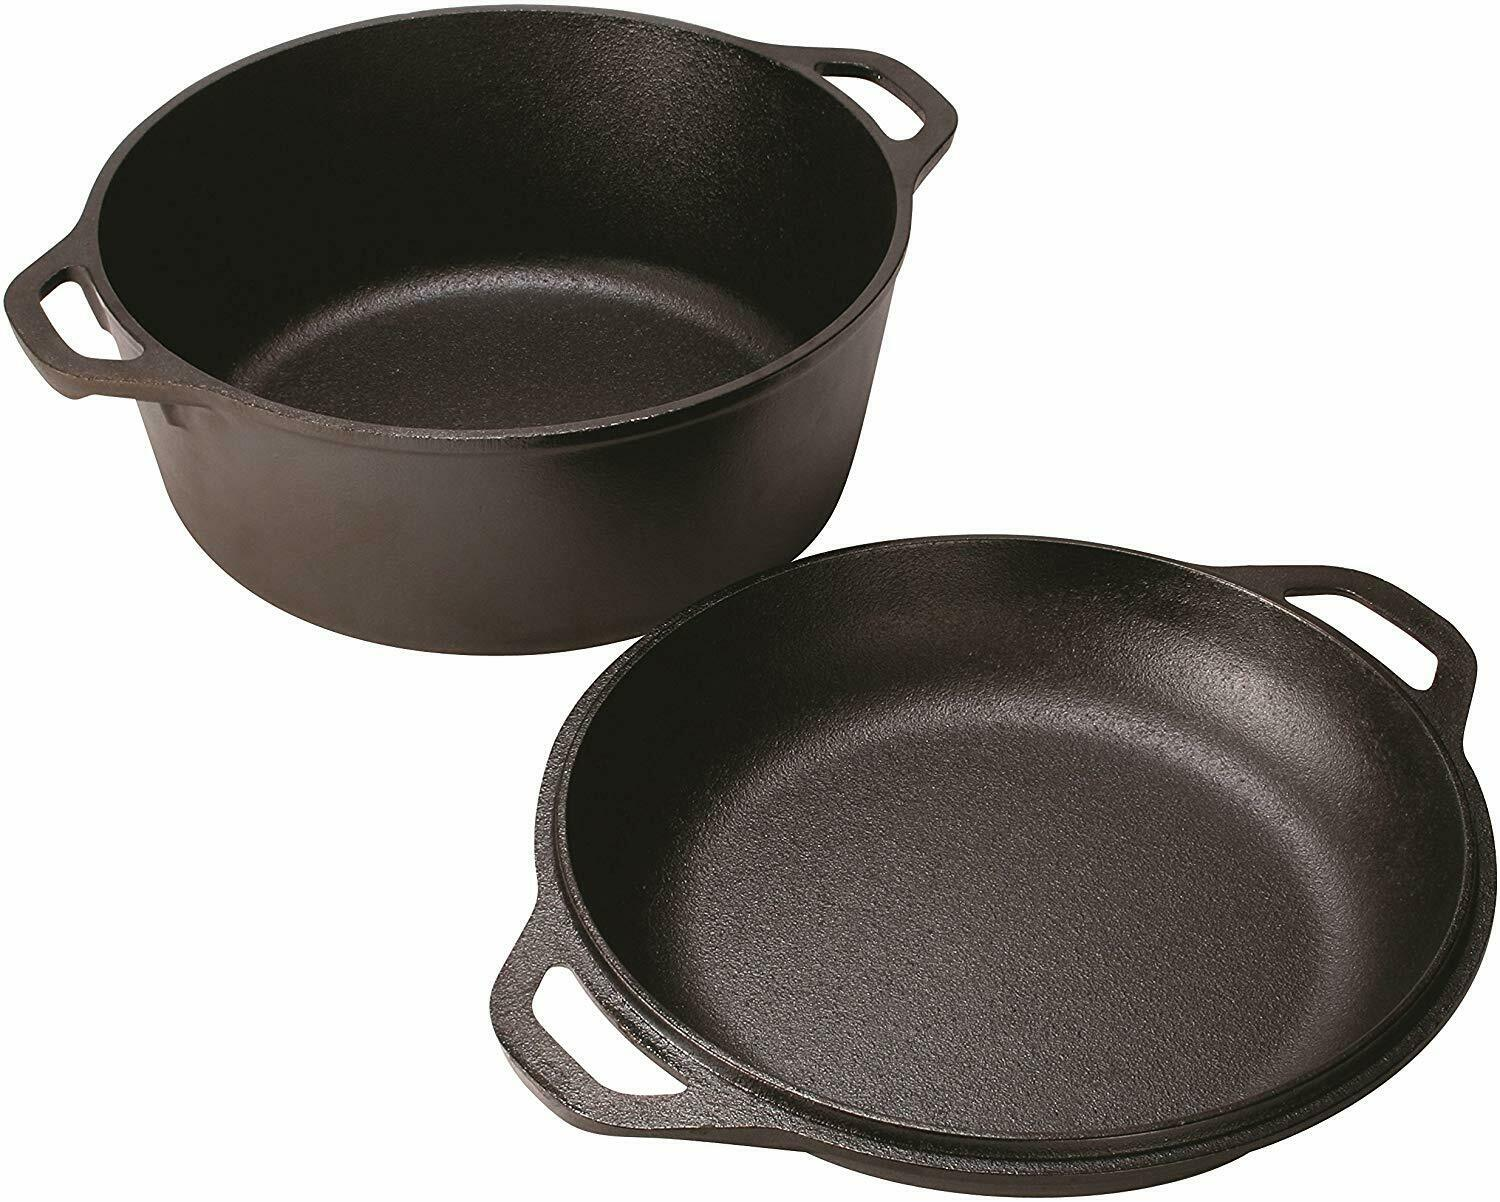 Lodge Cast Iron 5 Qt Double Dutch Oven Pot Casserole Skillet